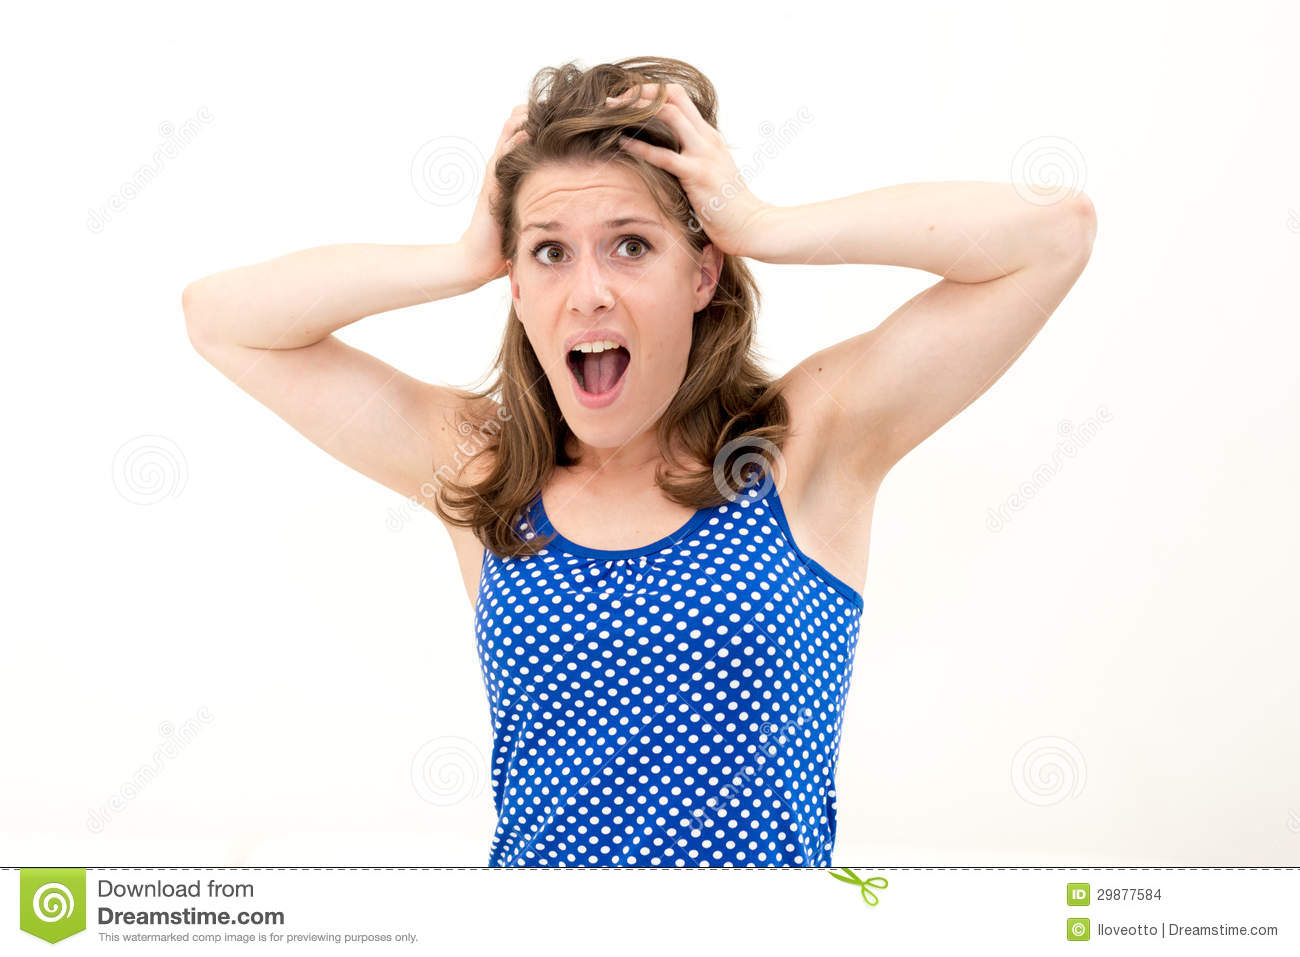 Grimace face clip art stock photo woman pulls a face in upset - Crazy Face Hair Pulling Woman Person Emotions Angry